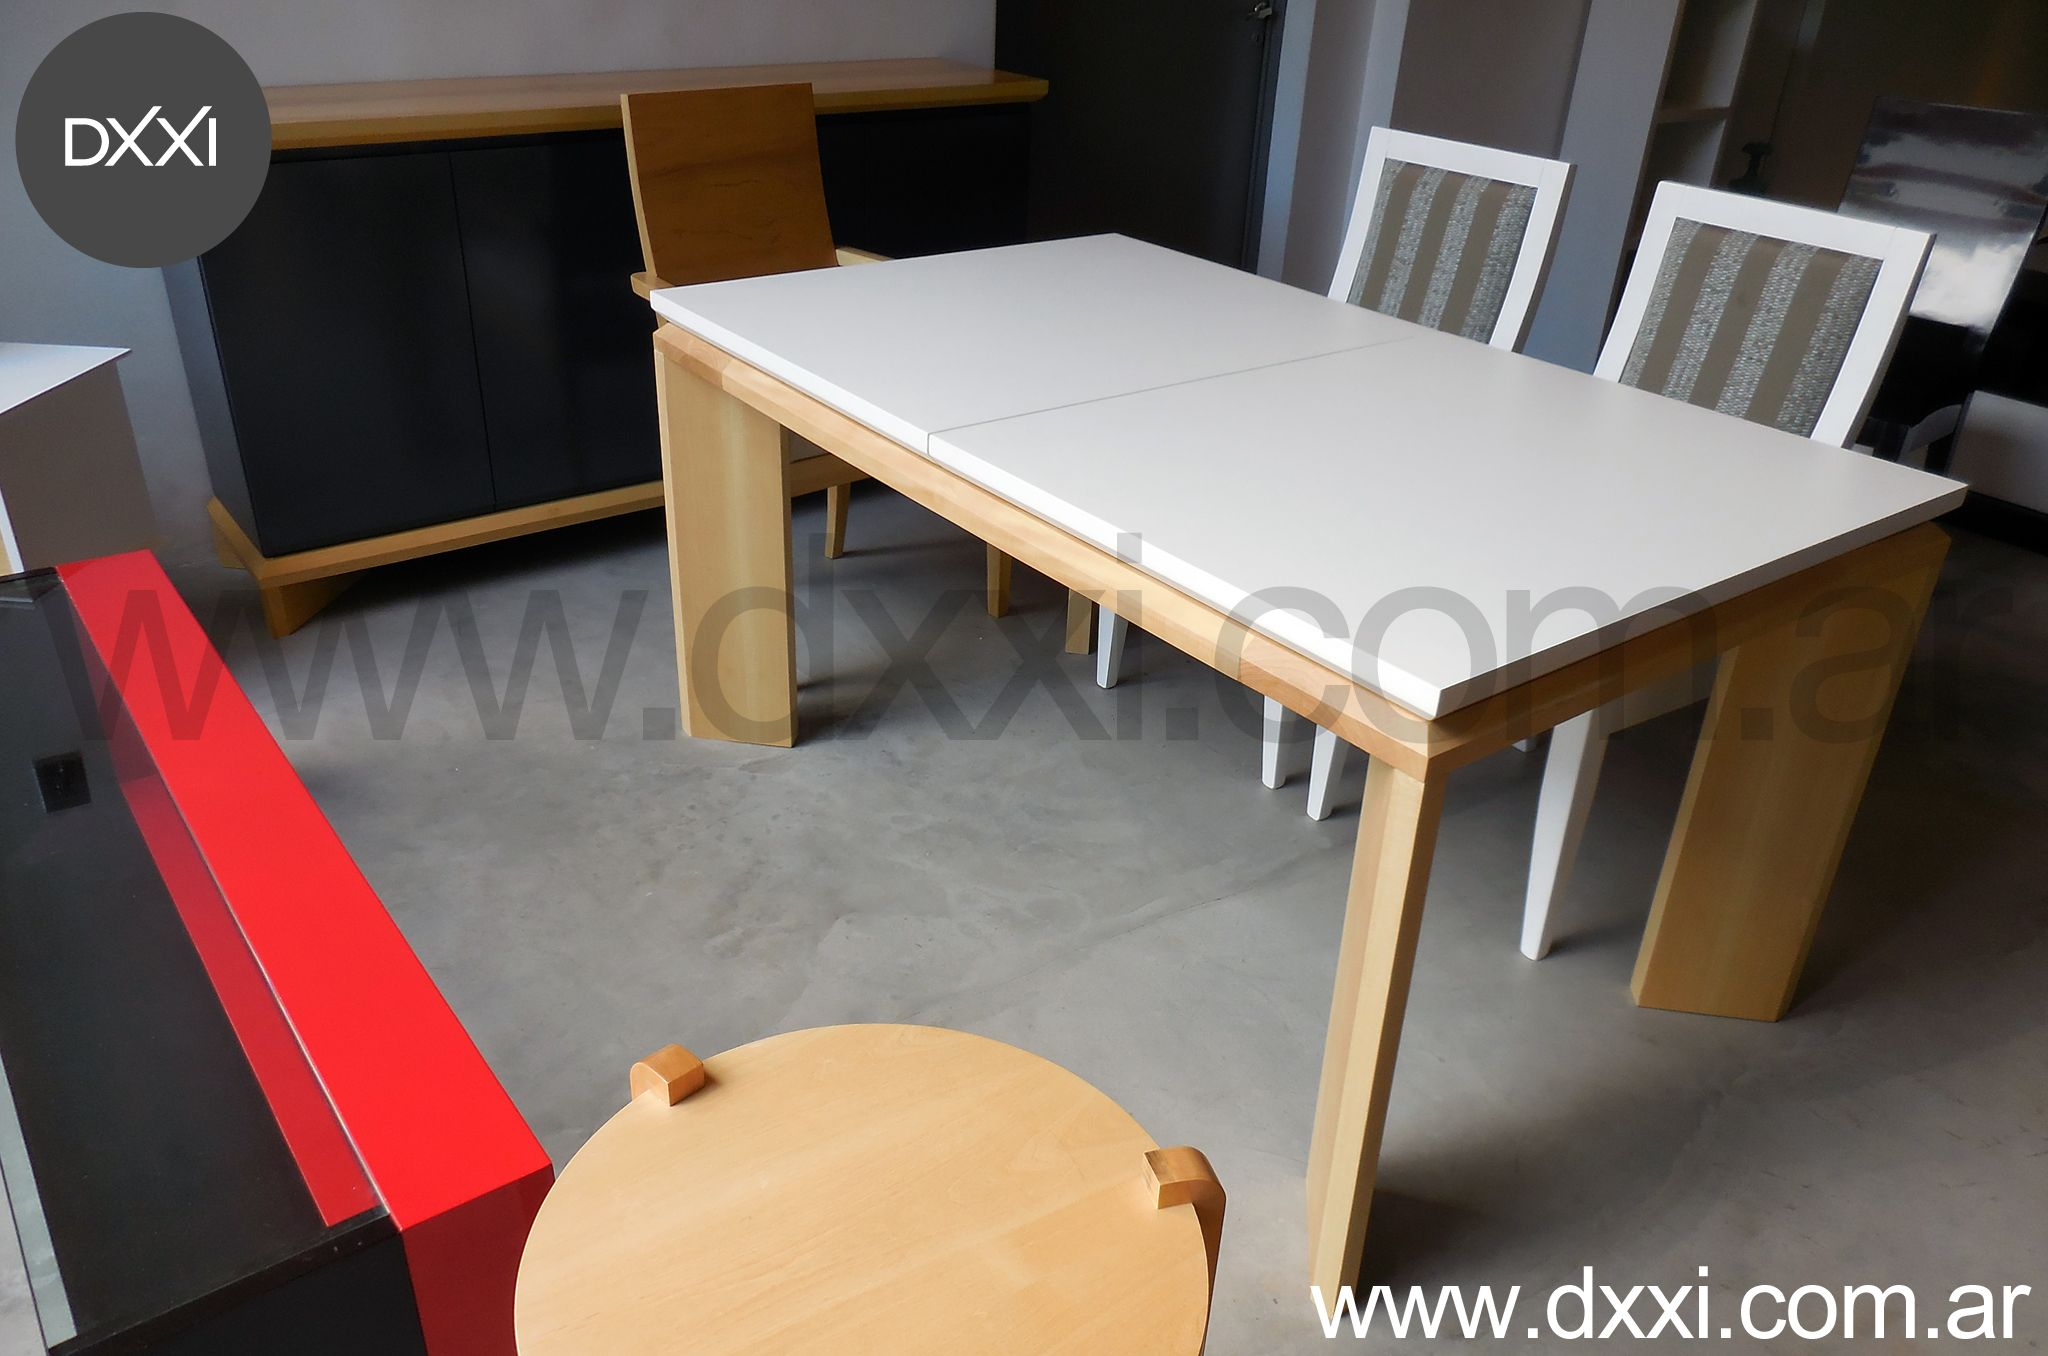 Furniture Designed Manufactured By Dxxi Buenos Aires Argentina  # Muebles Vikings Cl